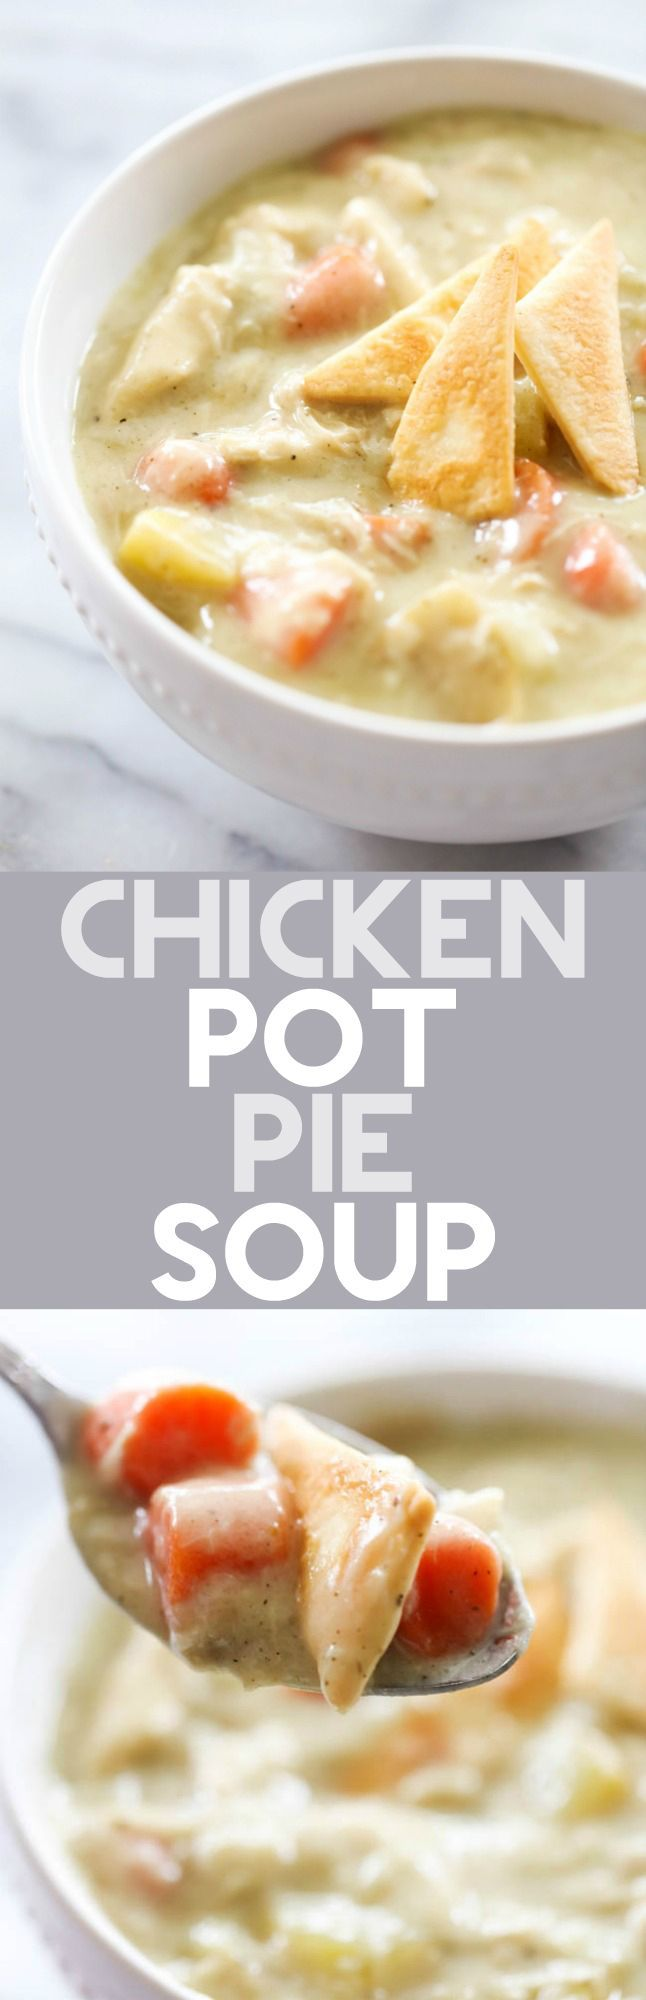 This Chicken Pot Pie Soup is a fun spin on a classic comfort food recipe! It is loaded with everything you love about the original and even has pie crust pieces on top!